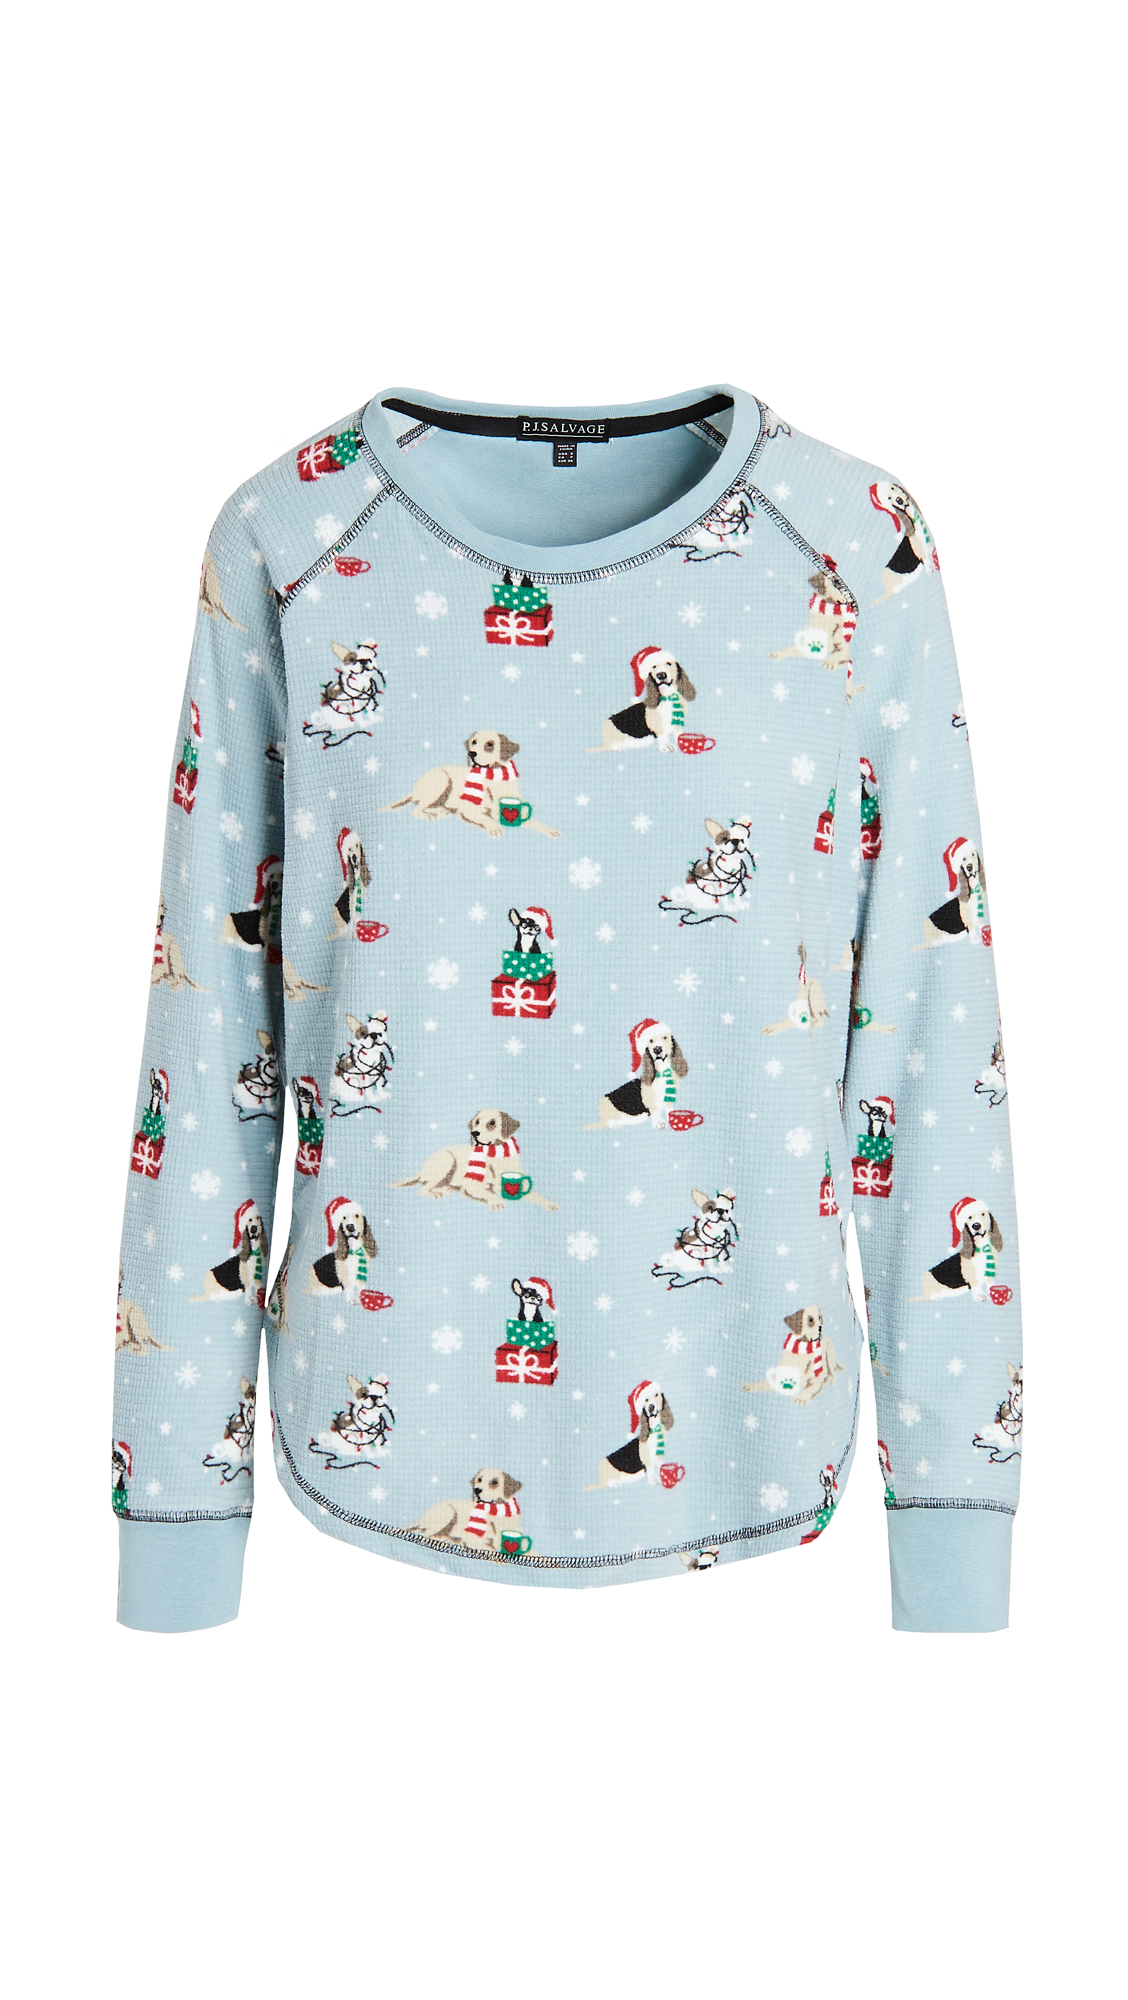 PJ Salvage Howlidays Long Sleeve Top